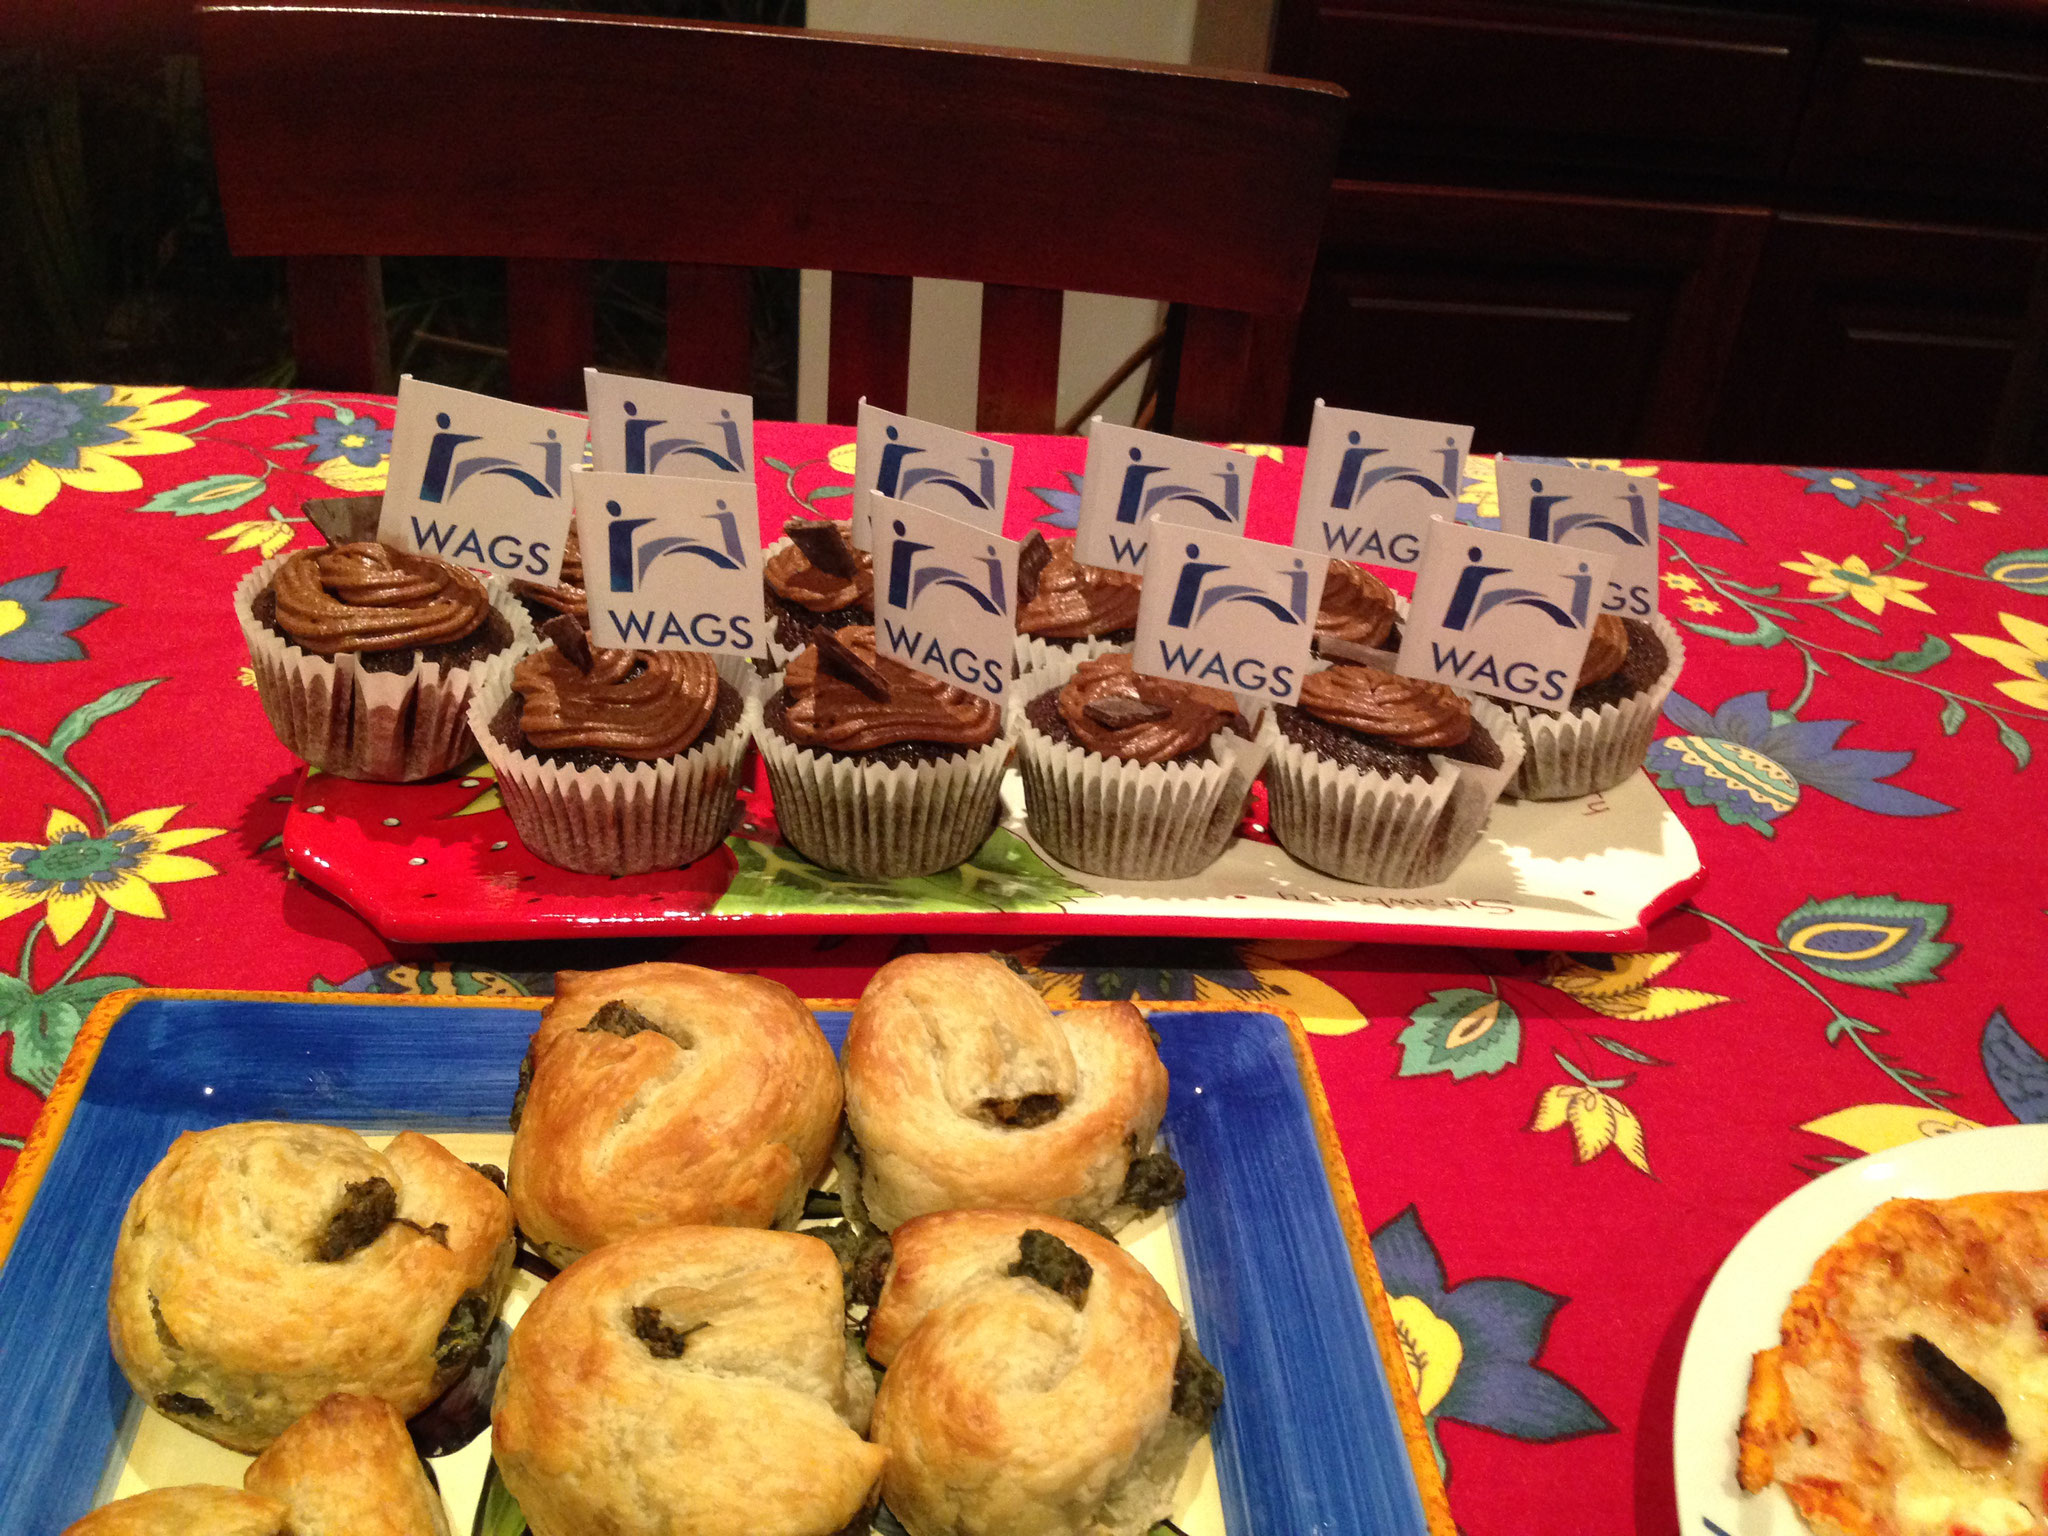 WAGS cupcakes 2015 the Inaugural year